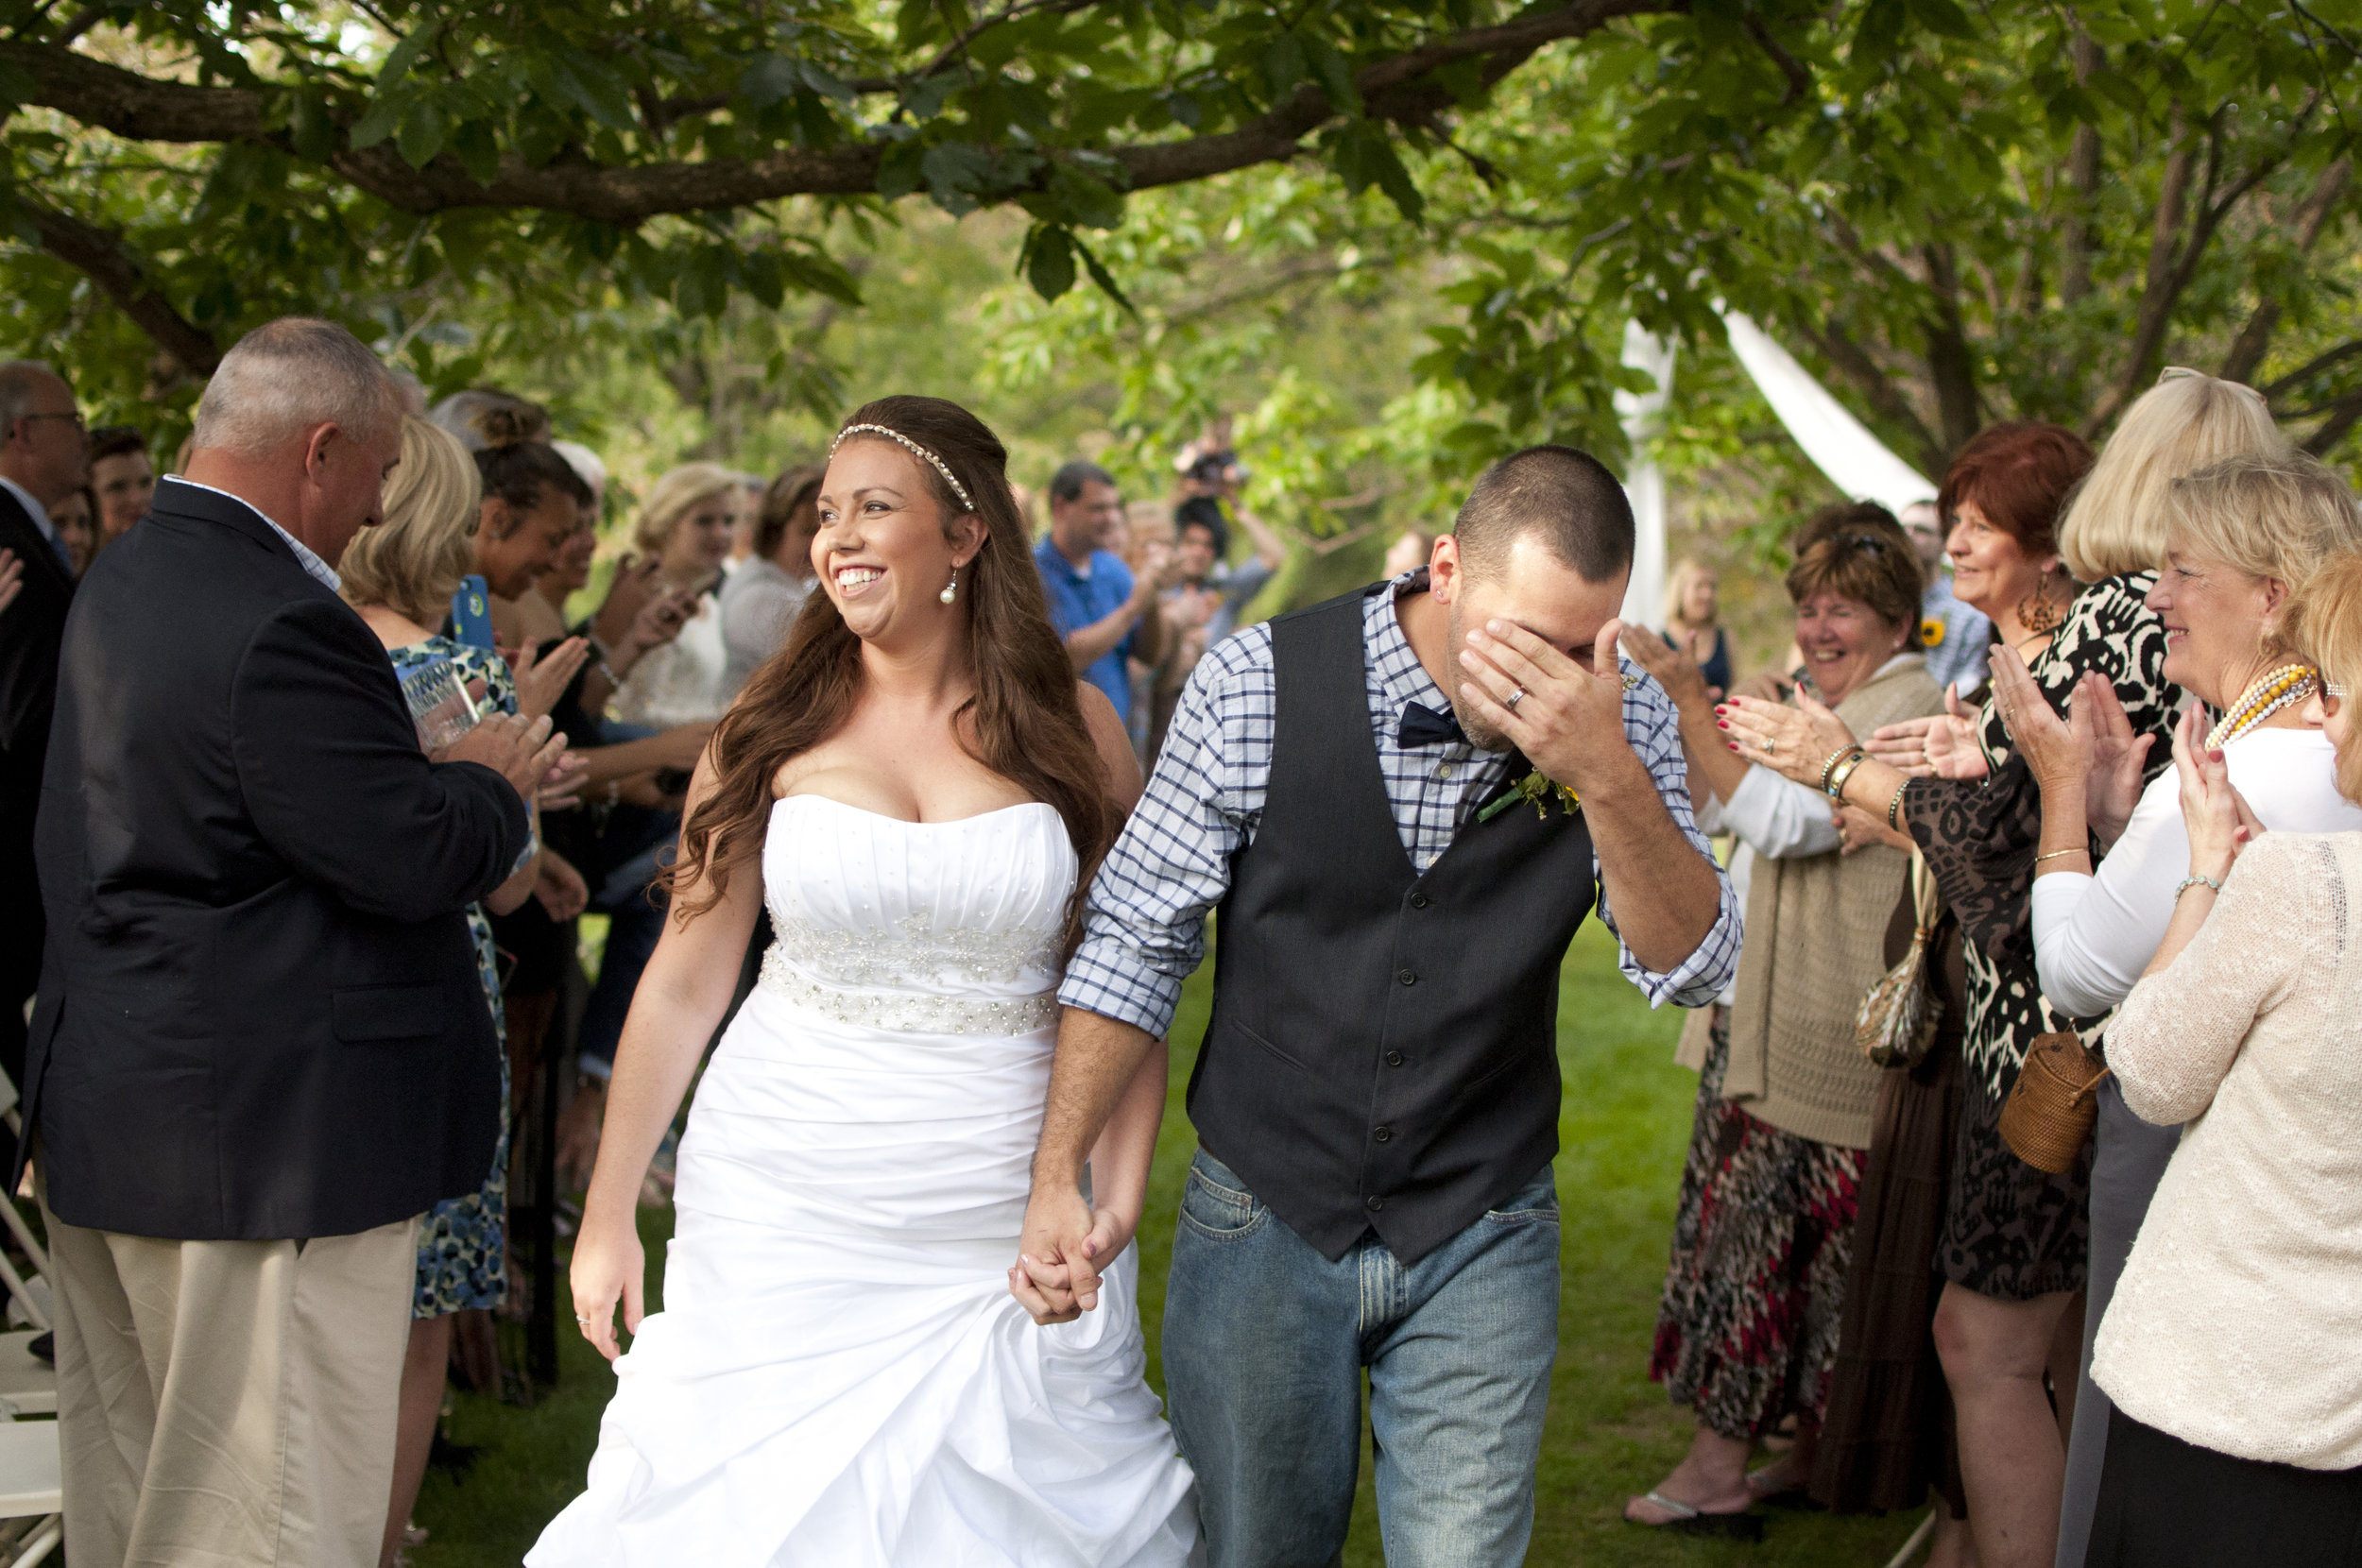 bride and groom announced after the ceremony at their outdoor ceremony at La Ferme Rouge in Patton, PA